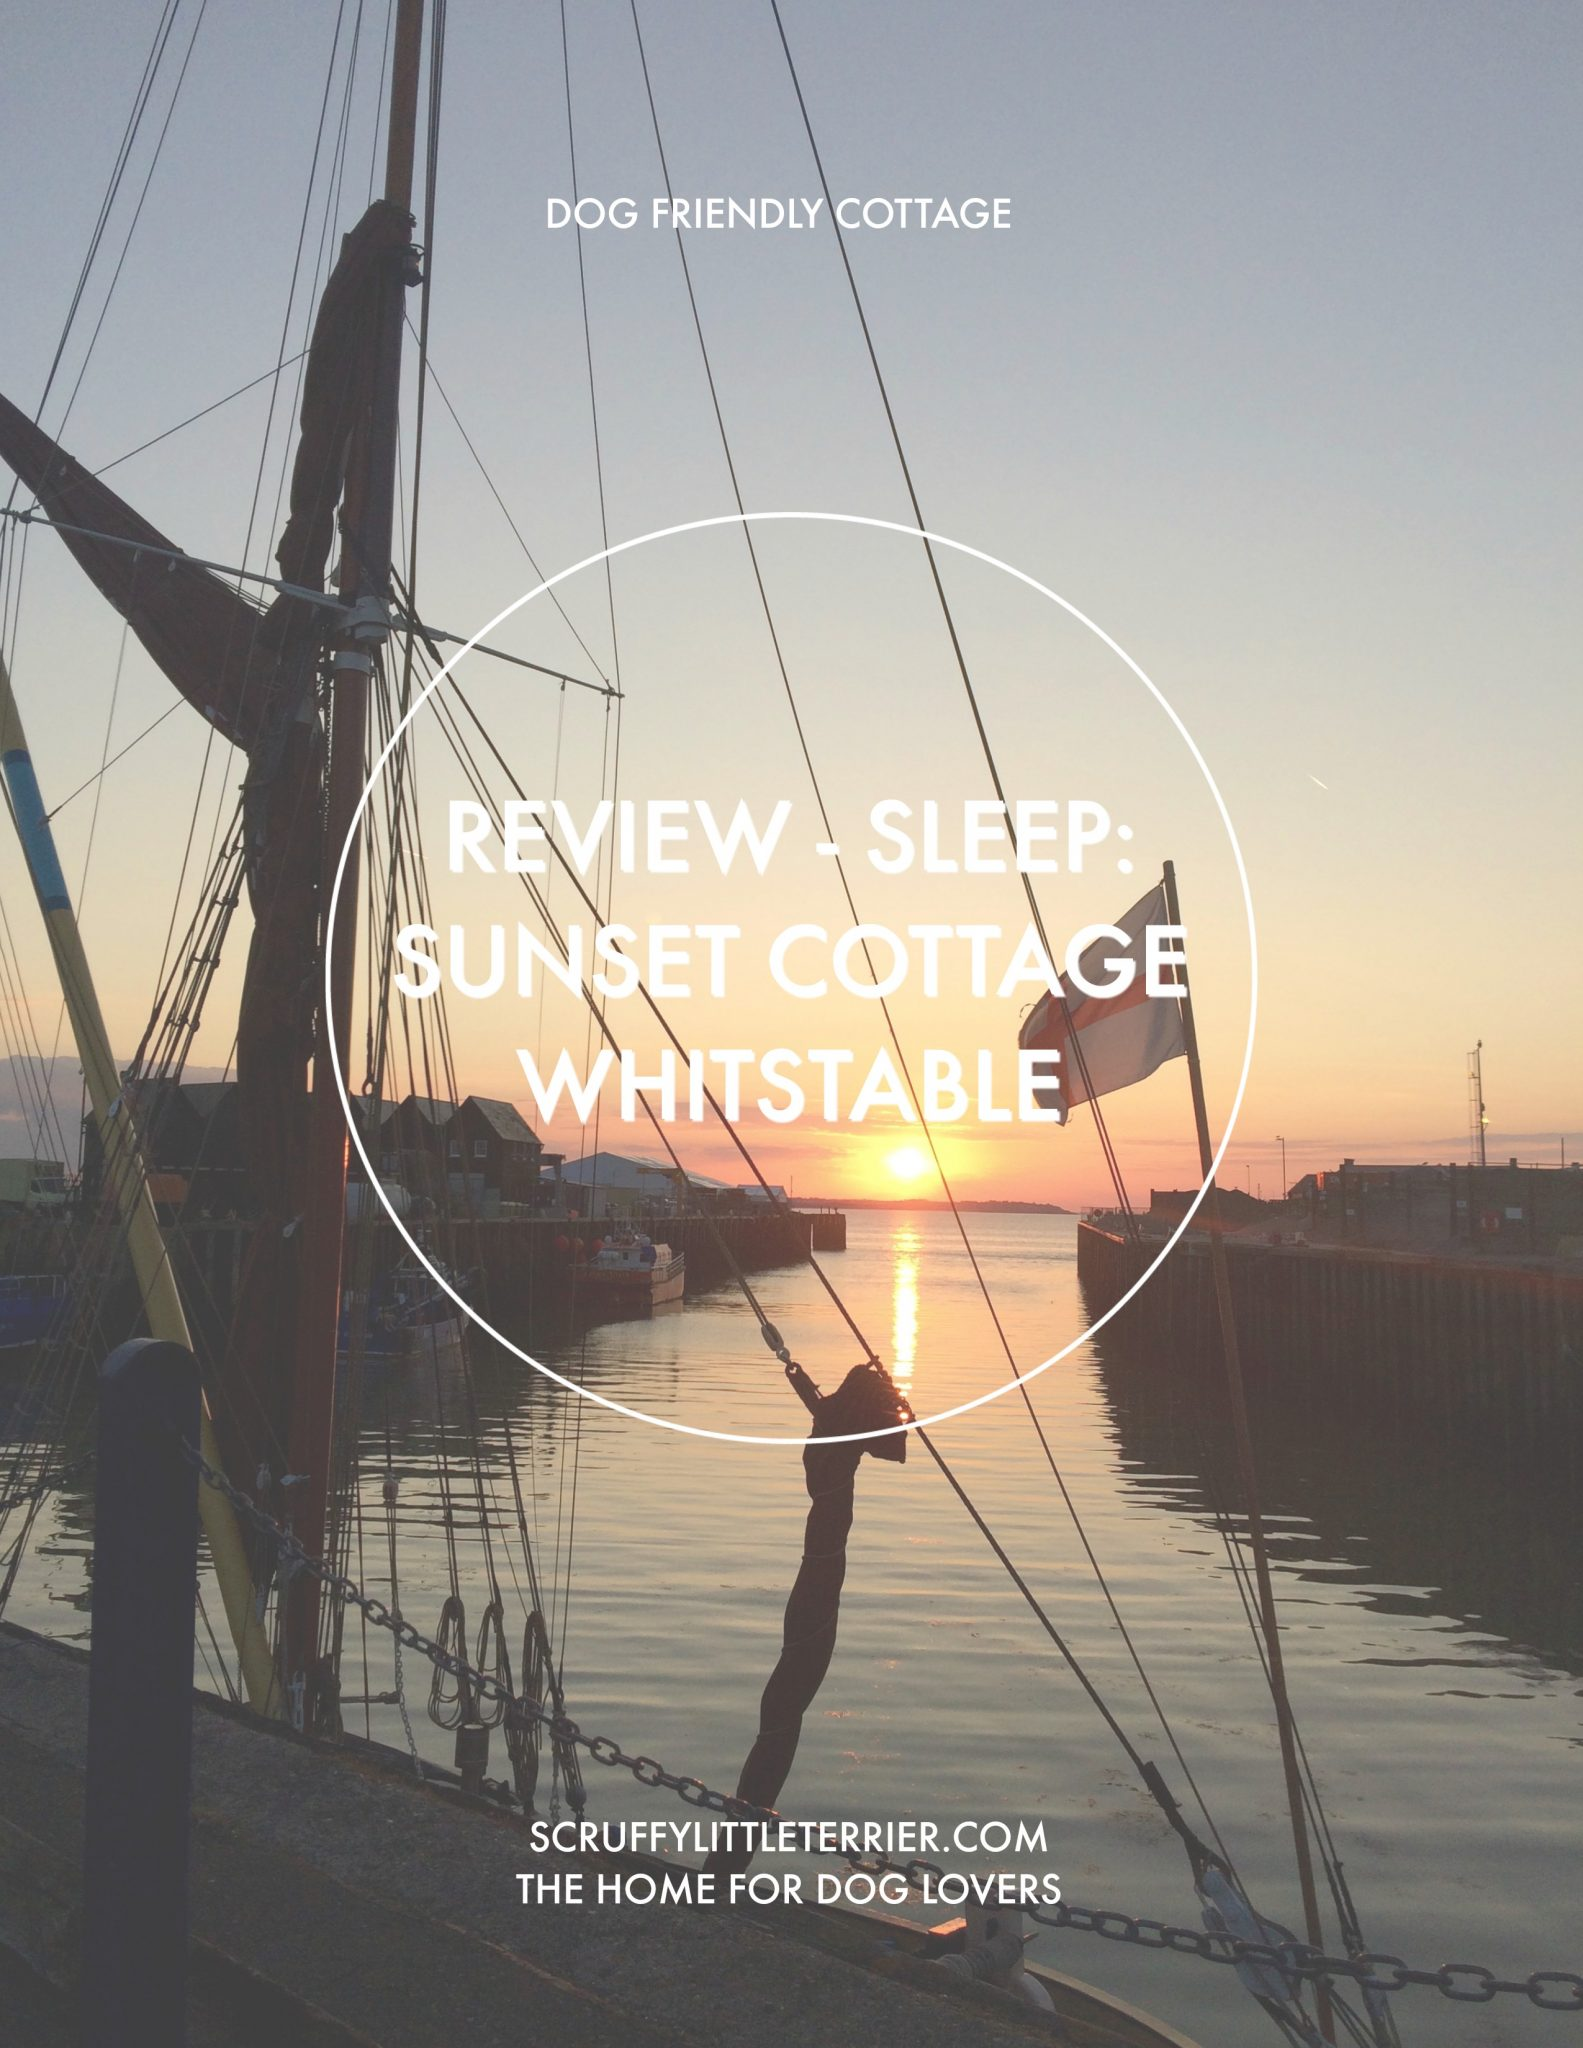 Sunset Cottage Whitstable {Sunset Cottage Whitstable} #Review #Sleep #SunsetCottage #Whitstable #Kent www.scruffylittleterrier.com